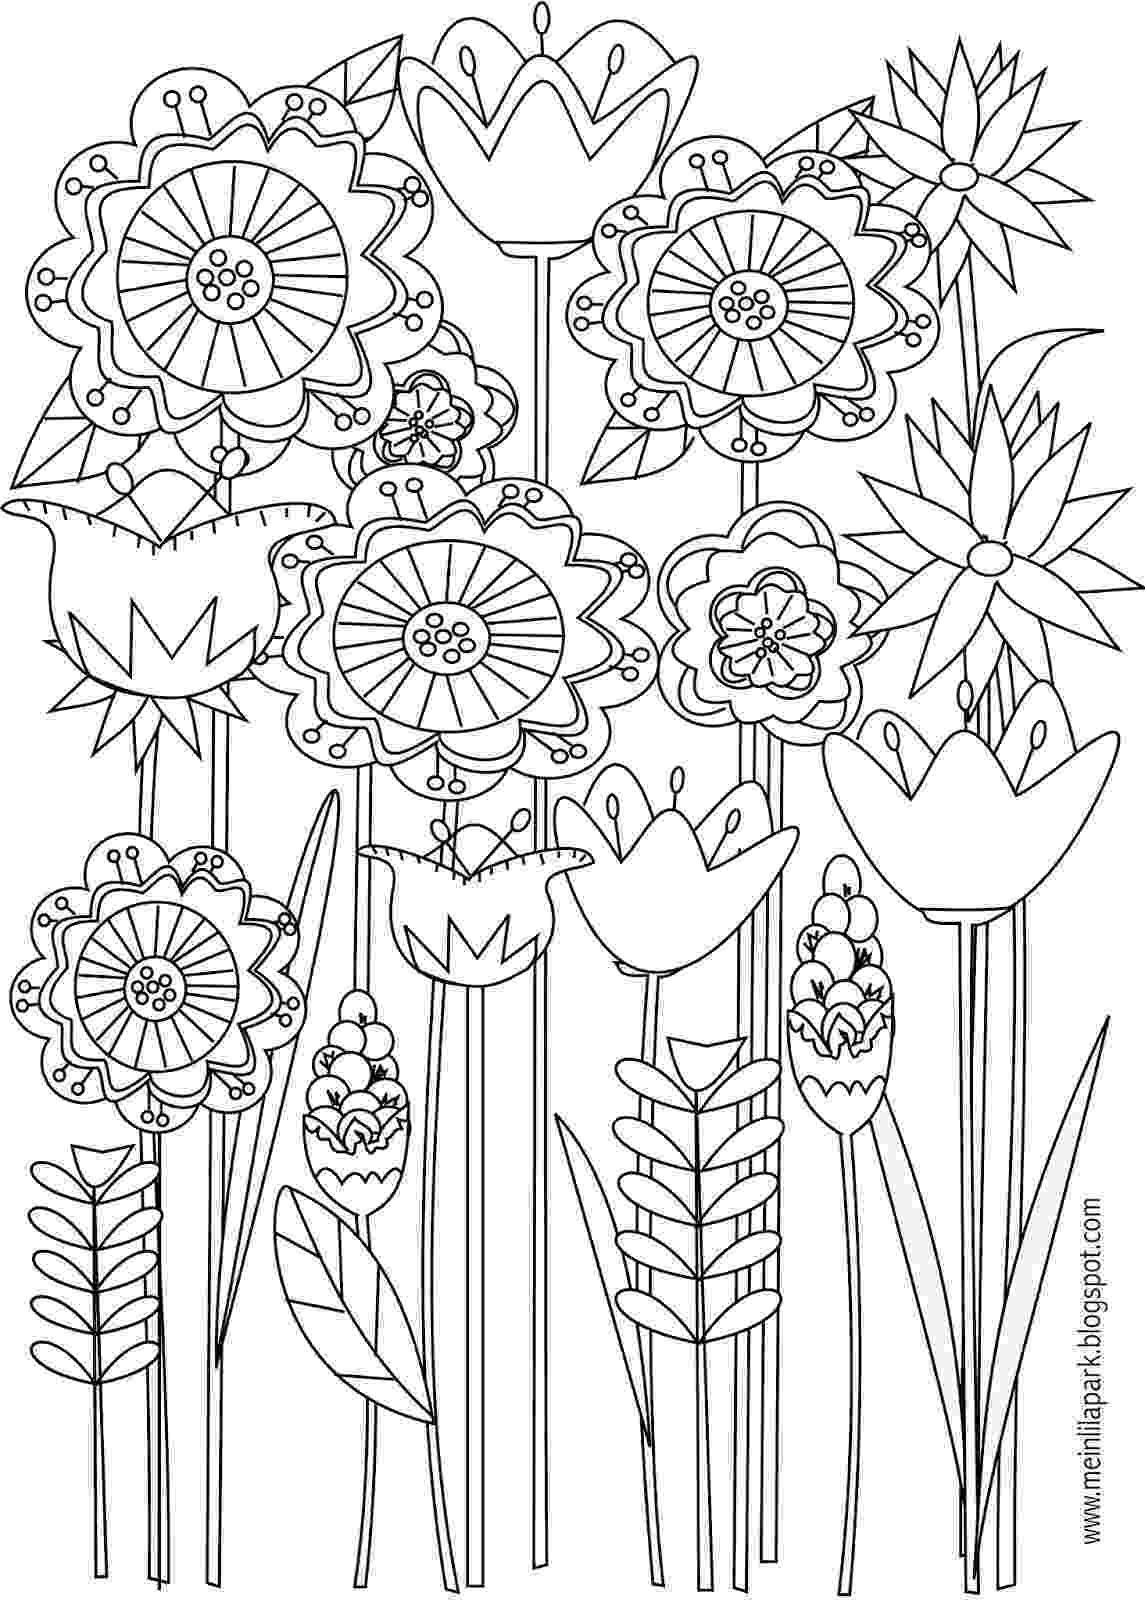 printable flower coloring pages for adults butterflies and bees adult coloring page favecraftscom pages coloring for flower adults printable